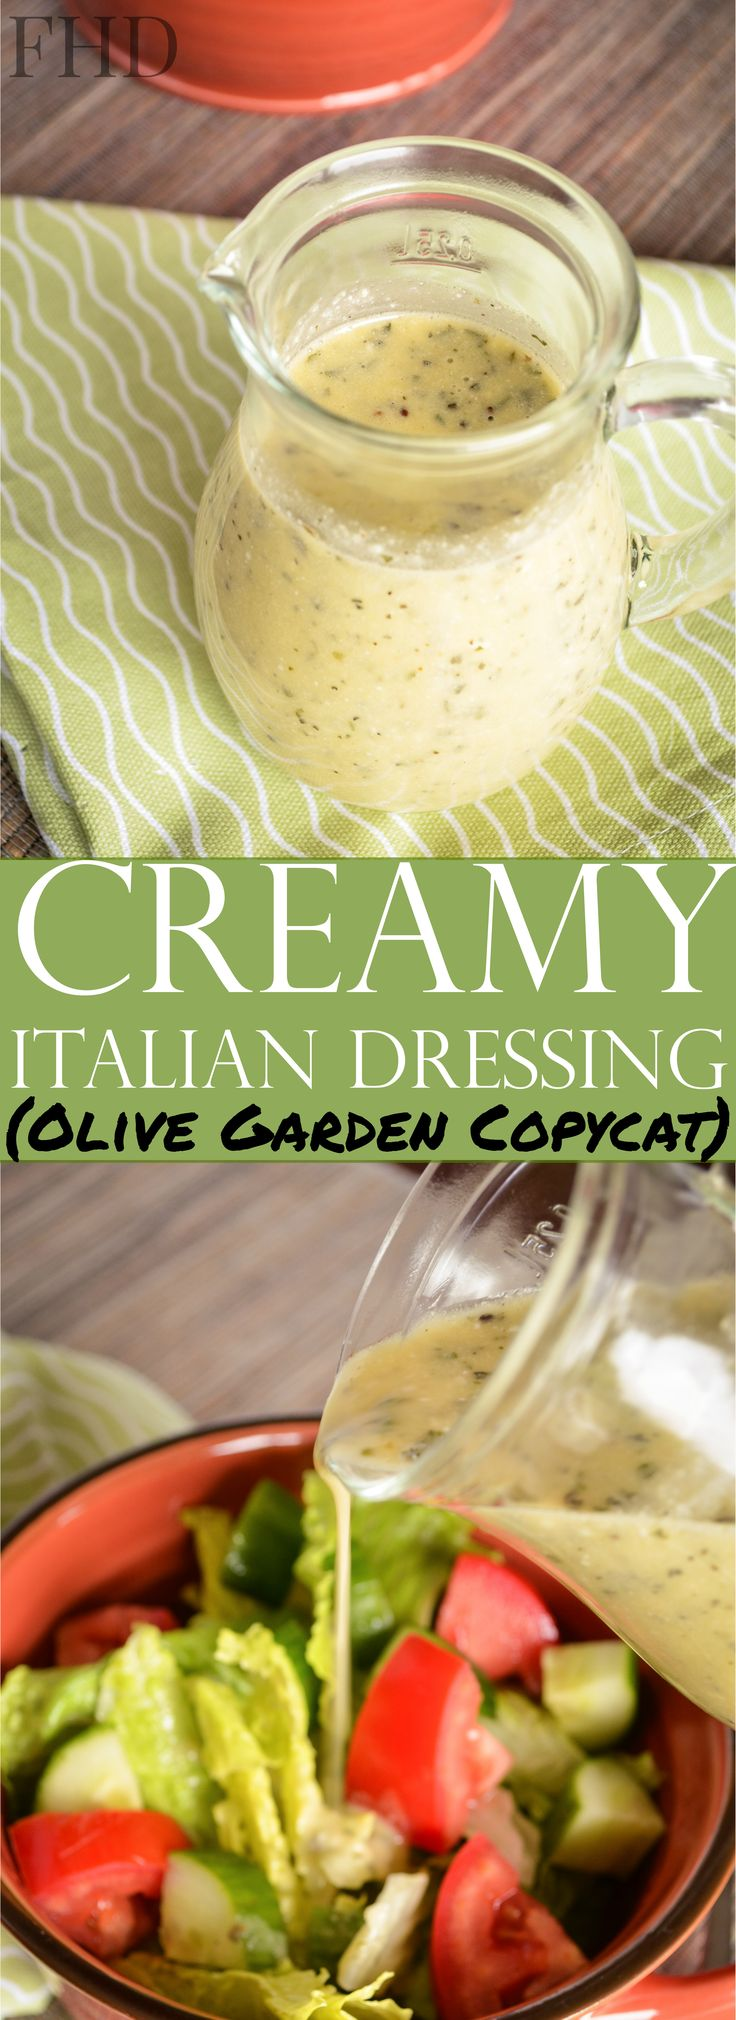 Try this low carb, sugar-free recipe for Creamy Italian Dressing! A healthier copycat of your favorite Olive Garden Dressing! THM S